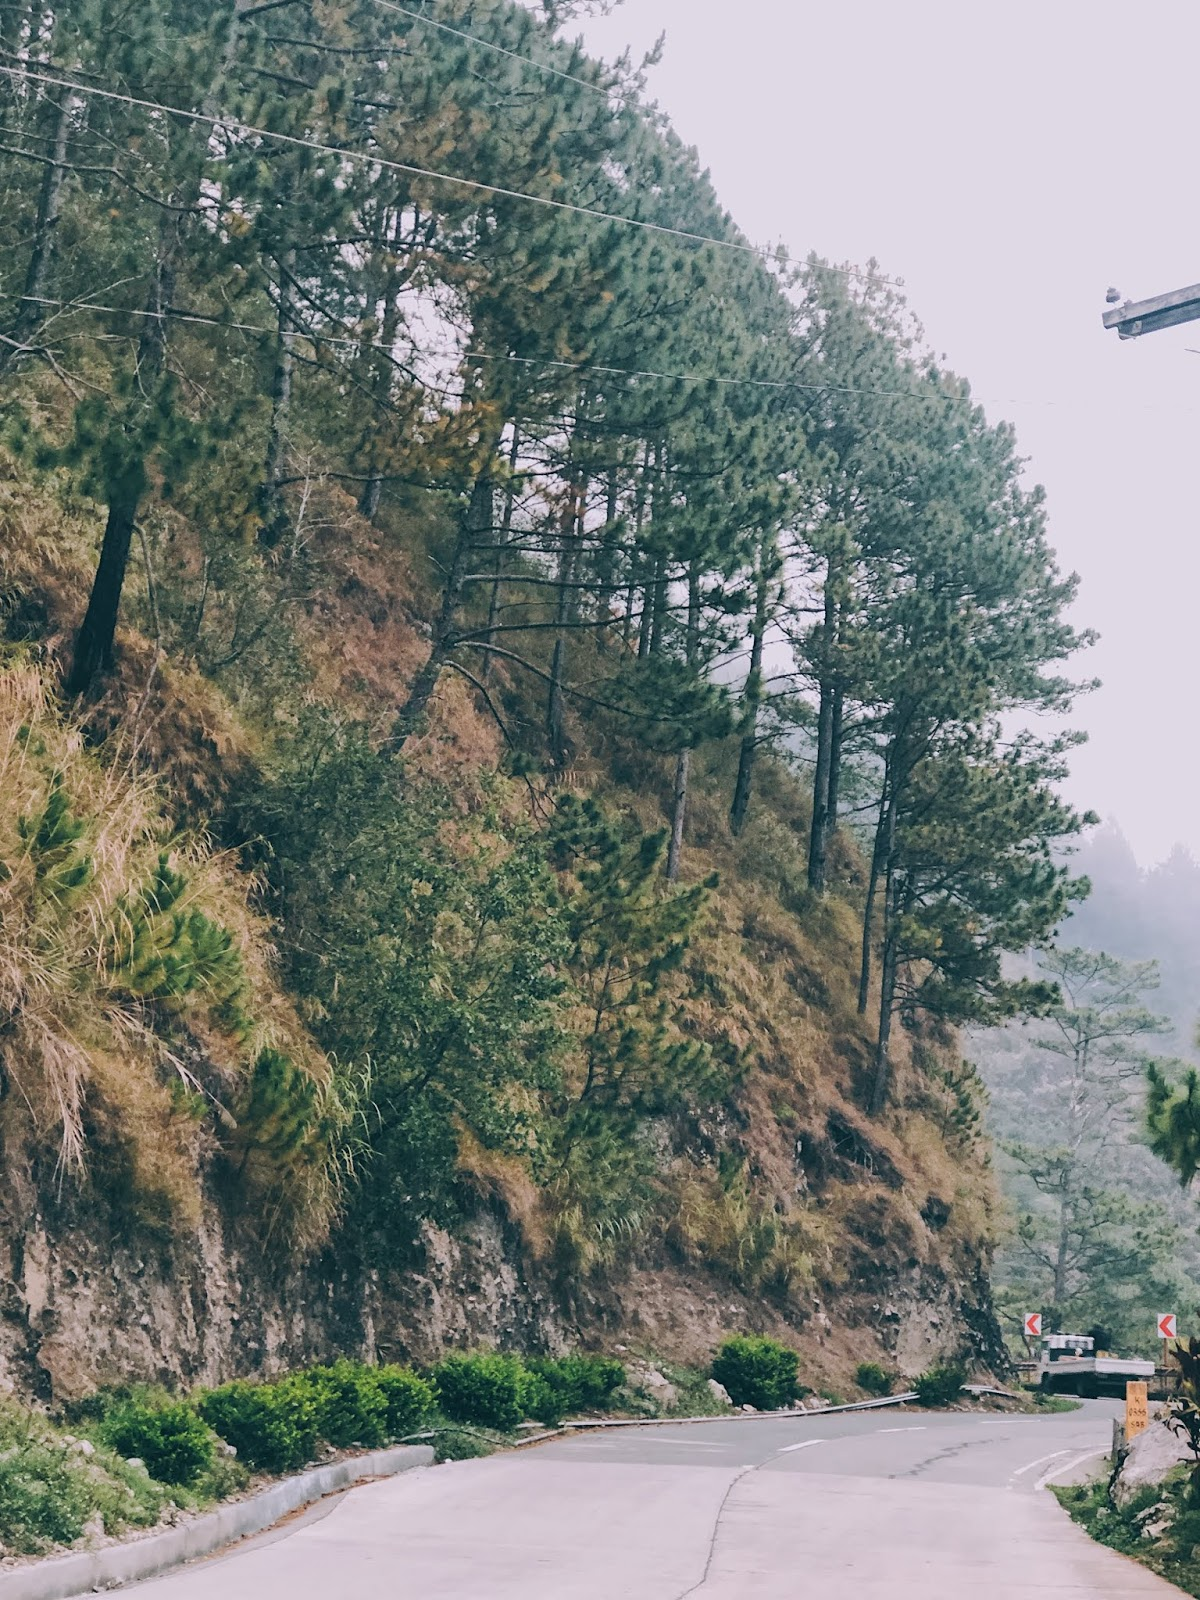 Roads going to Sagada